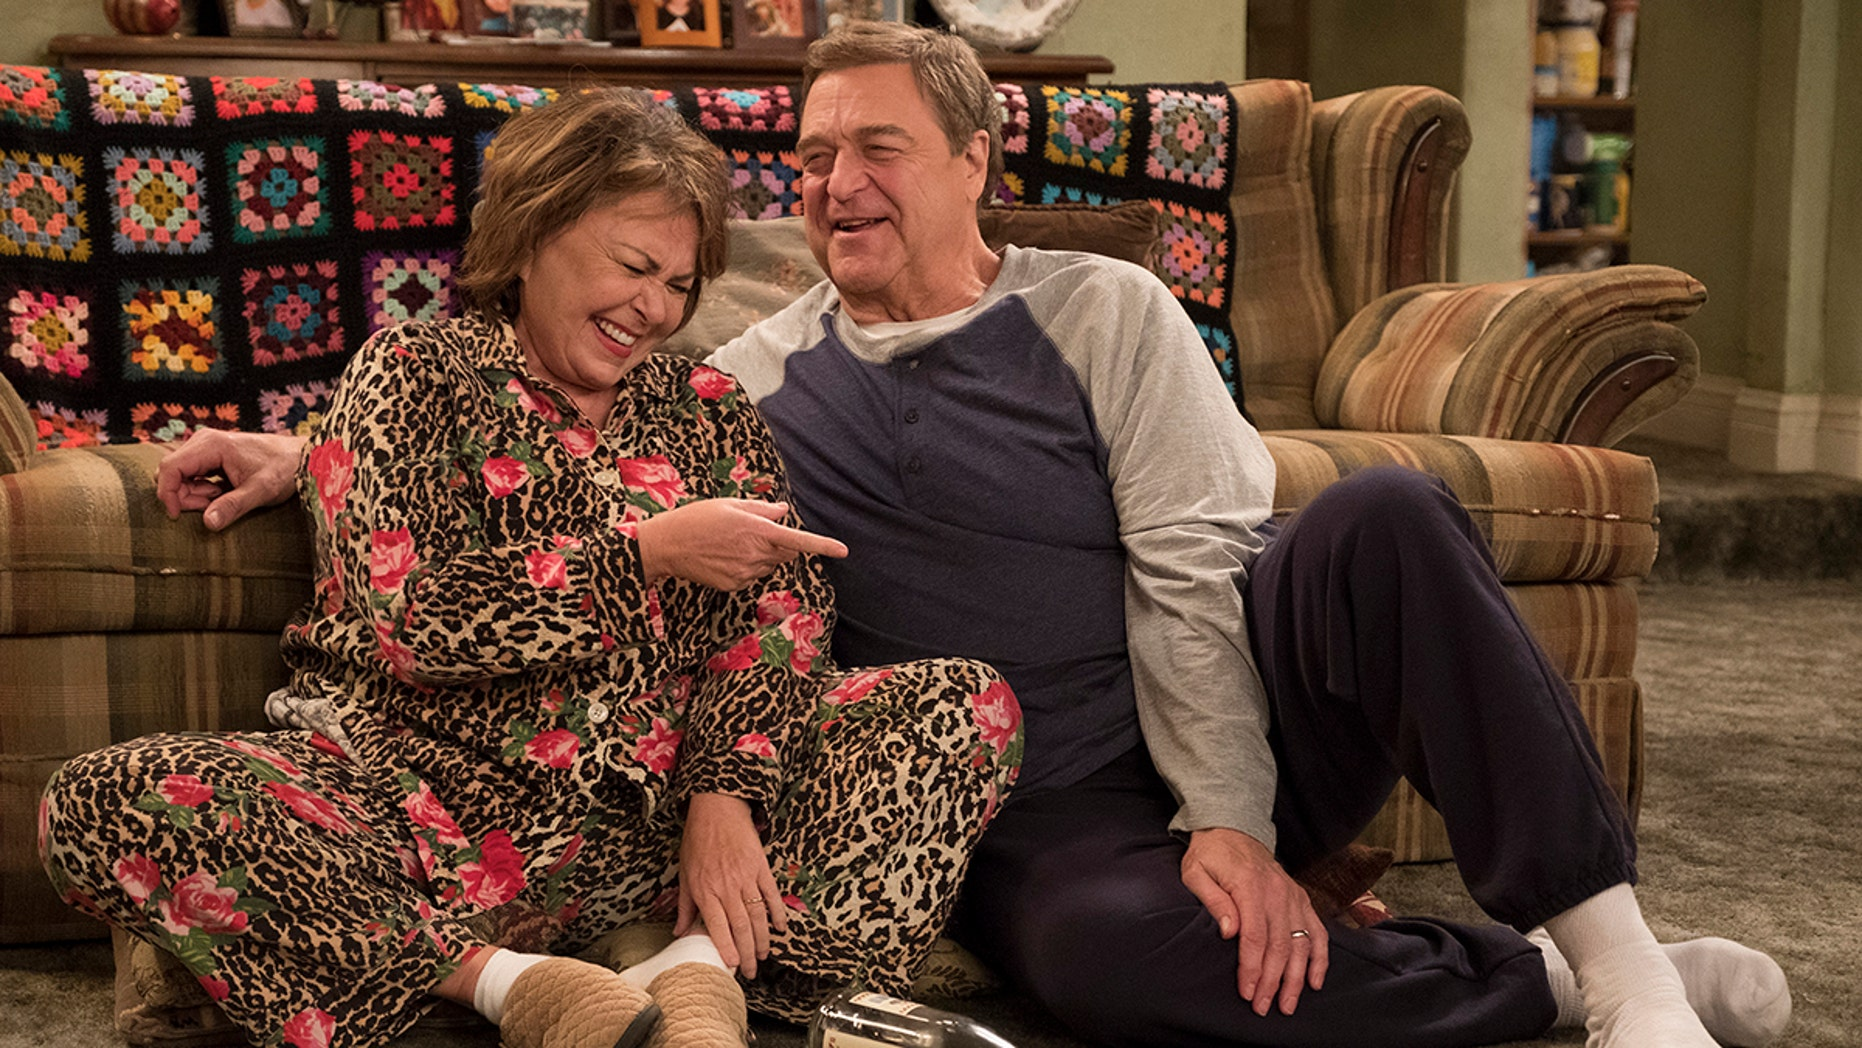 """ROSEANNE - """"Netflix & Pill"""" - After celebrating their 45th anniversary, Roseanne reveals to Dan a bigger problem with her bad knee. Meanwhile, Crystal announces her retirement as a waitress at the casino, and Becky and Darlene compete for the job which has full-time benefits, on the eighth episode of the revival of """"Roseanne,"""" TUESDAY, MAY 15 (8:00-8:30 p.m. EDT), on The ABC Television Network. (ABC/Adam Rose)ROSEANNE BARR, JOHN GOODMAN"""